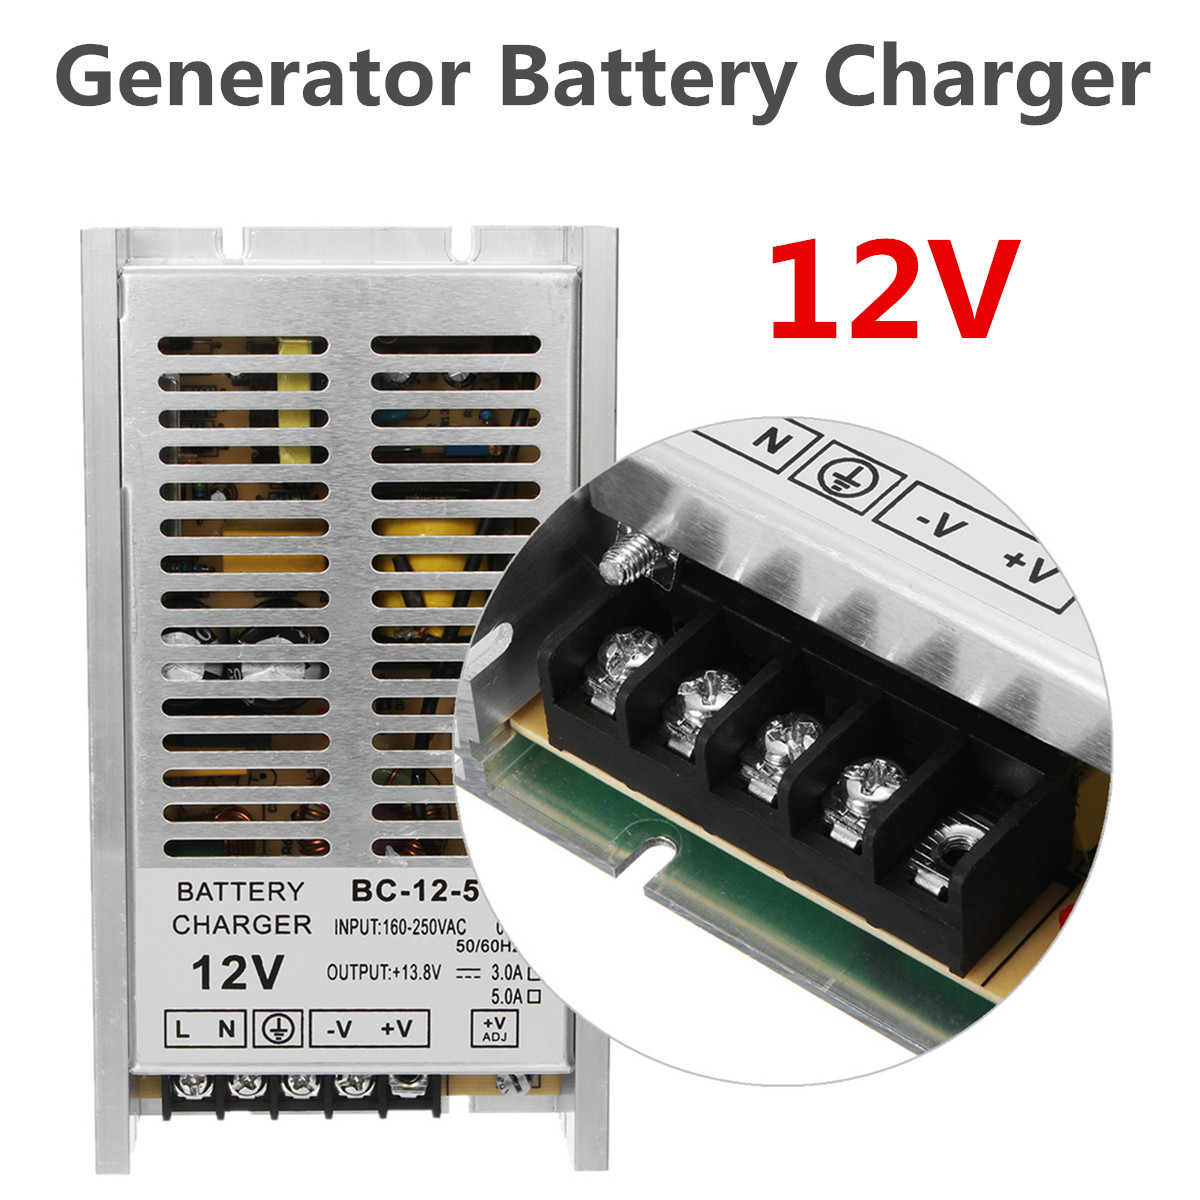 12V Rechargeable Float Battery Charger For Diesel Generator Engine Power Supply for Lead acid Batterie Protection Aluminum Alloy